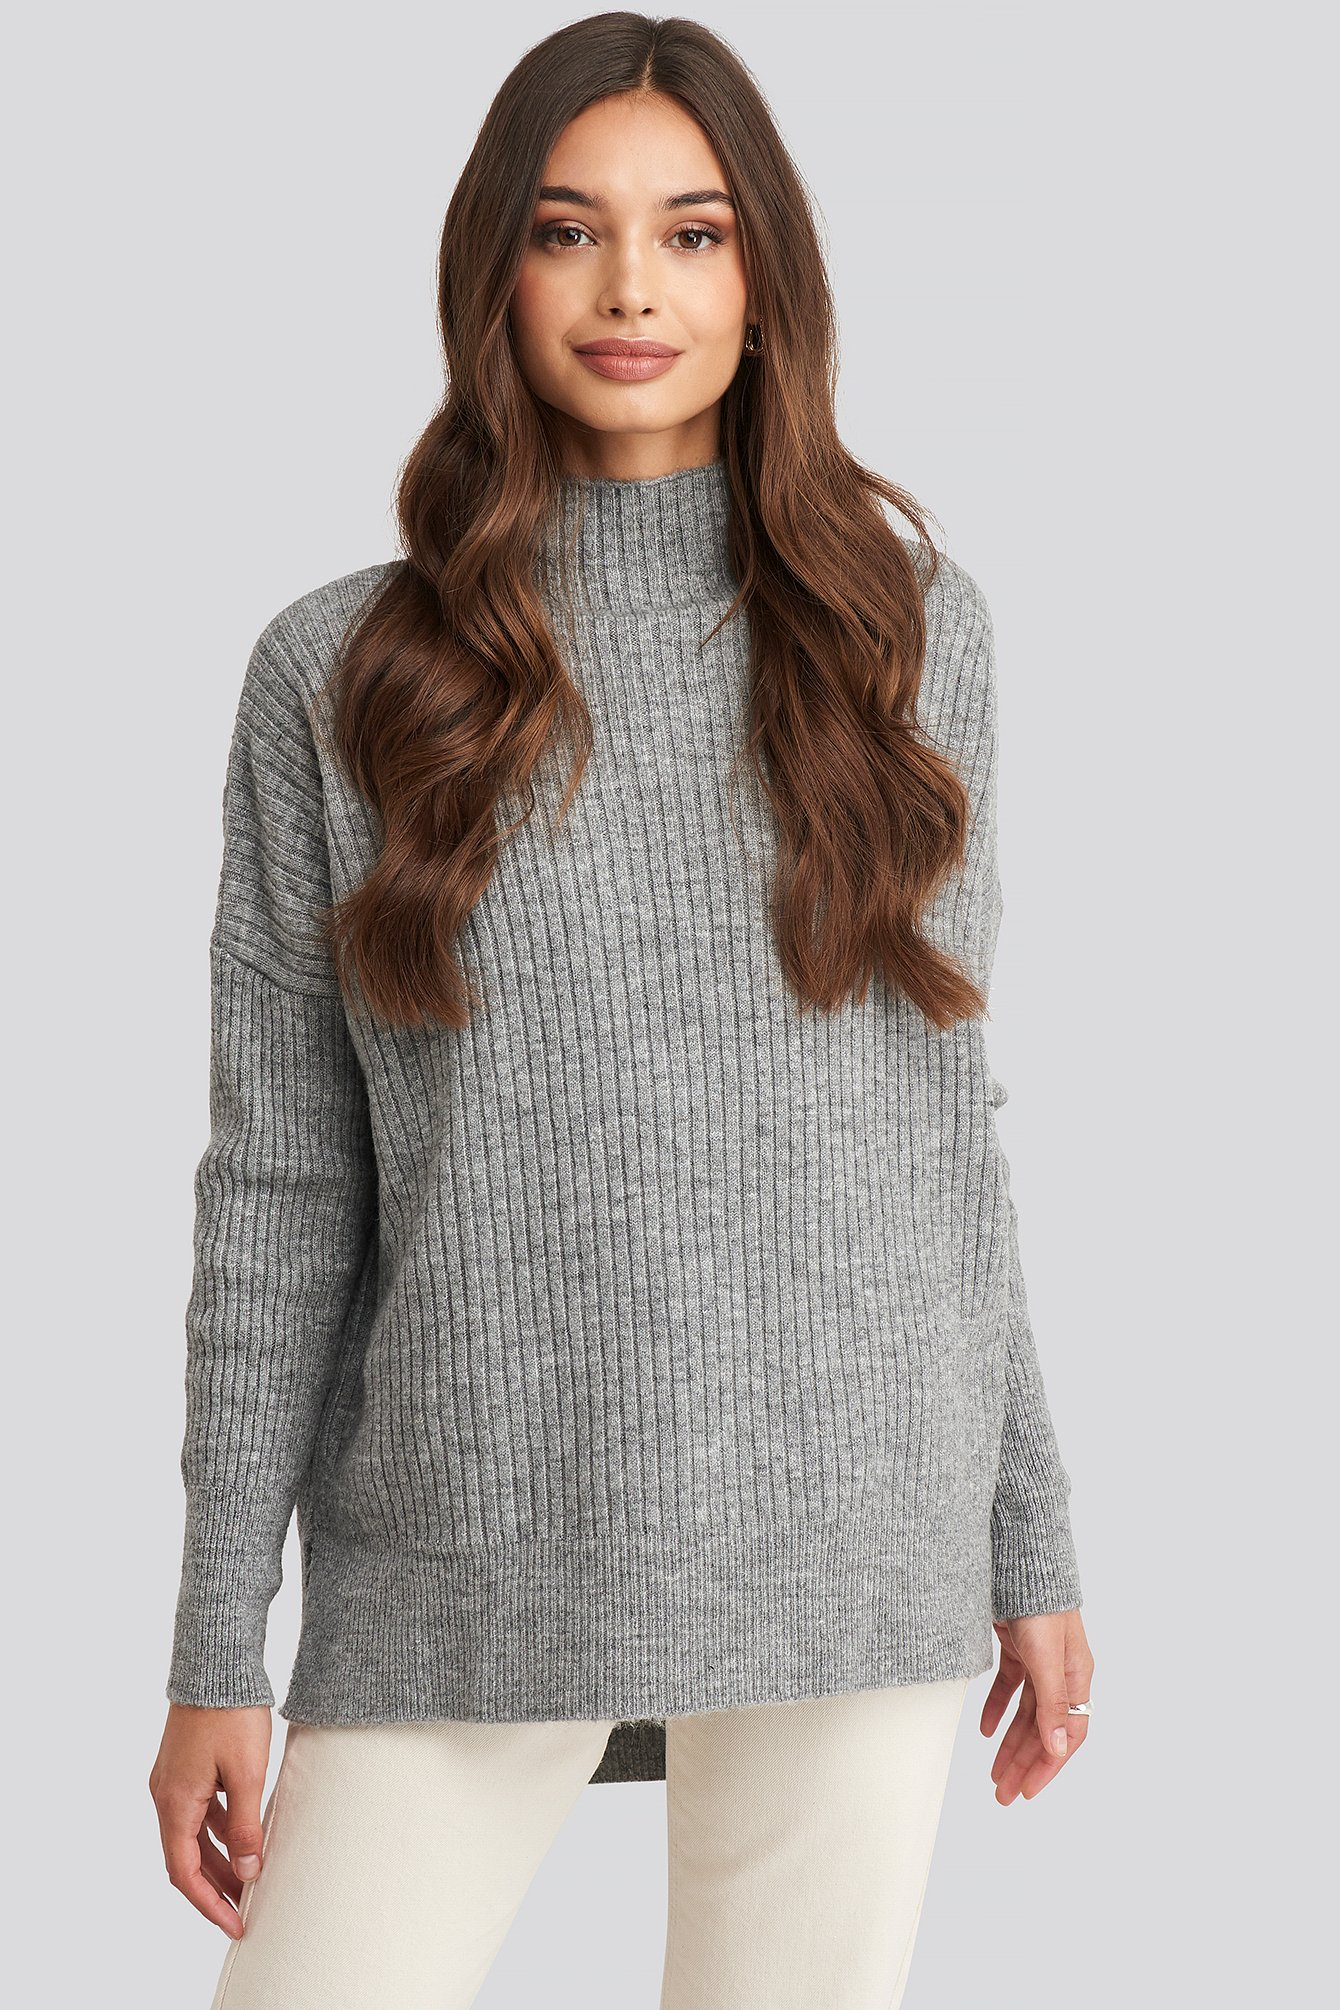 Trendyol Vertical Neck Knitted Sweater - Grey